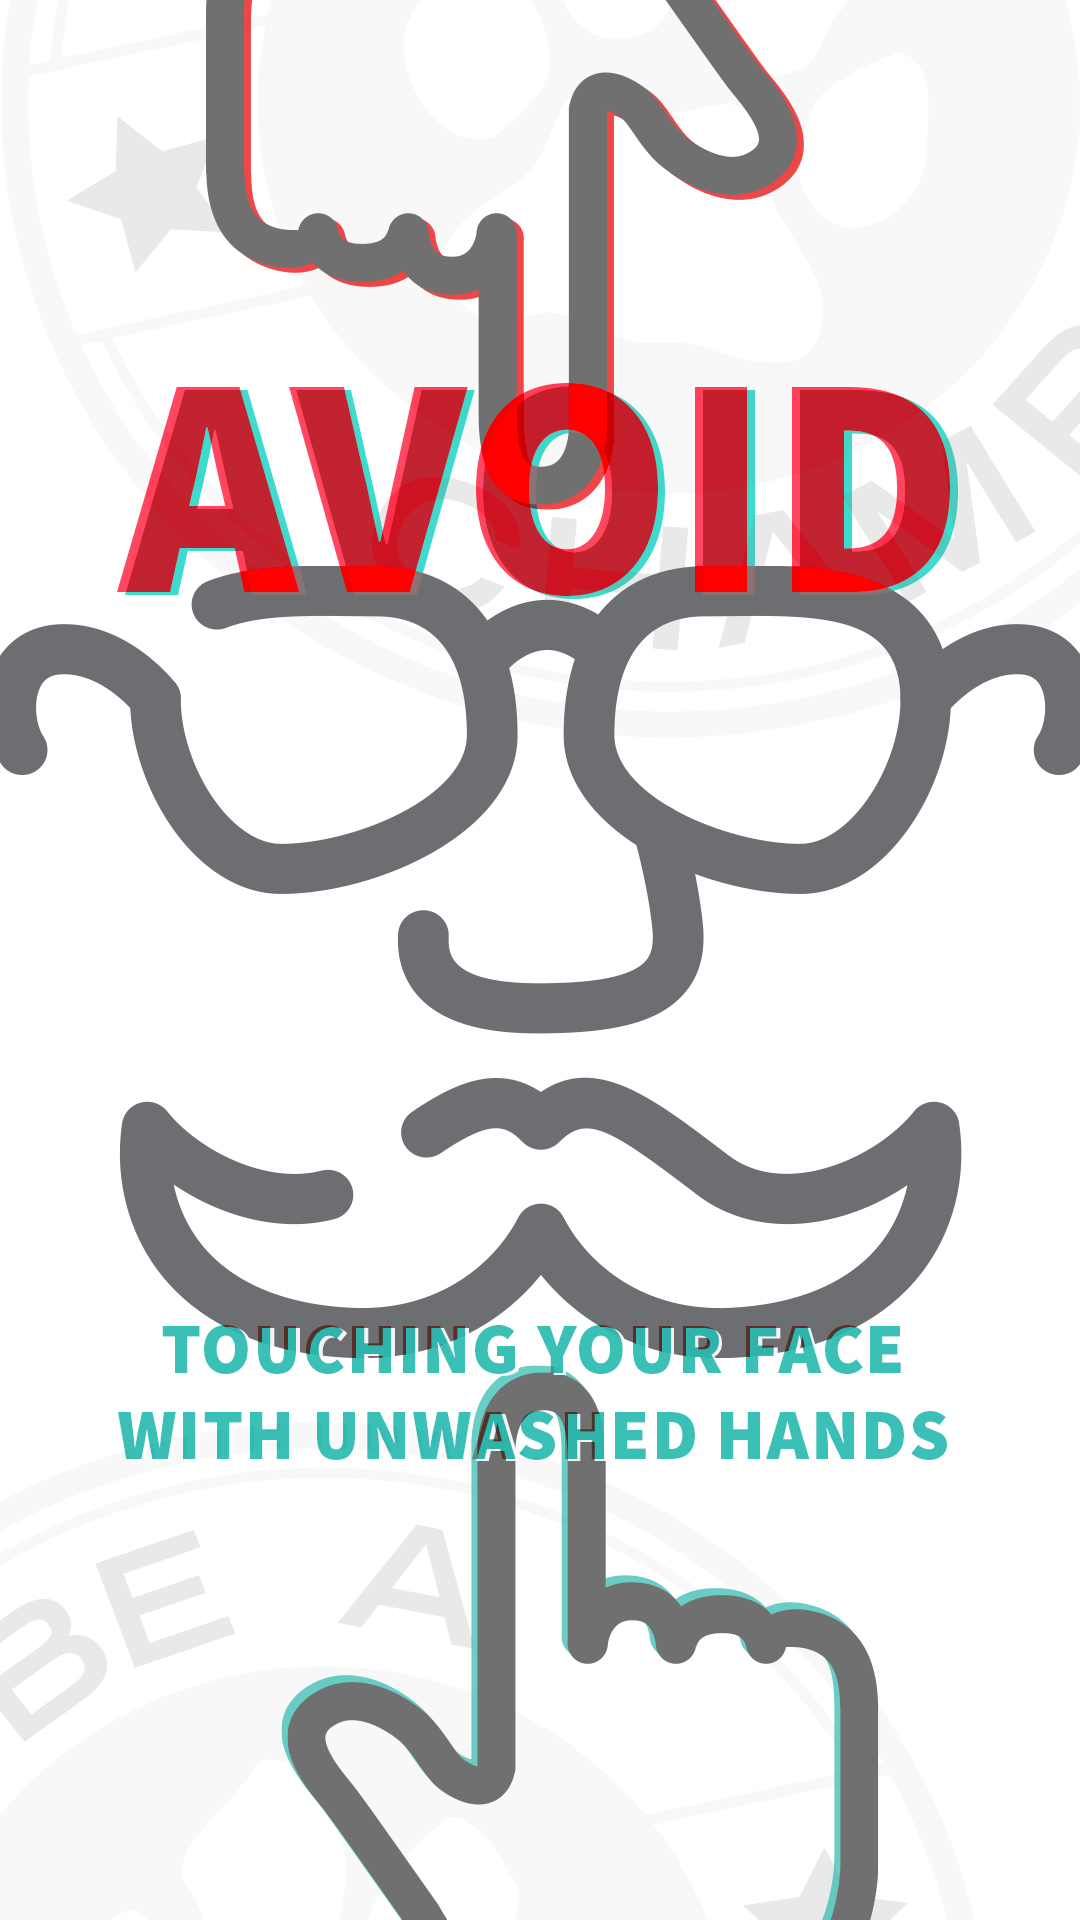 Avoid Toching Your Face With Unwashed Hands